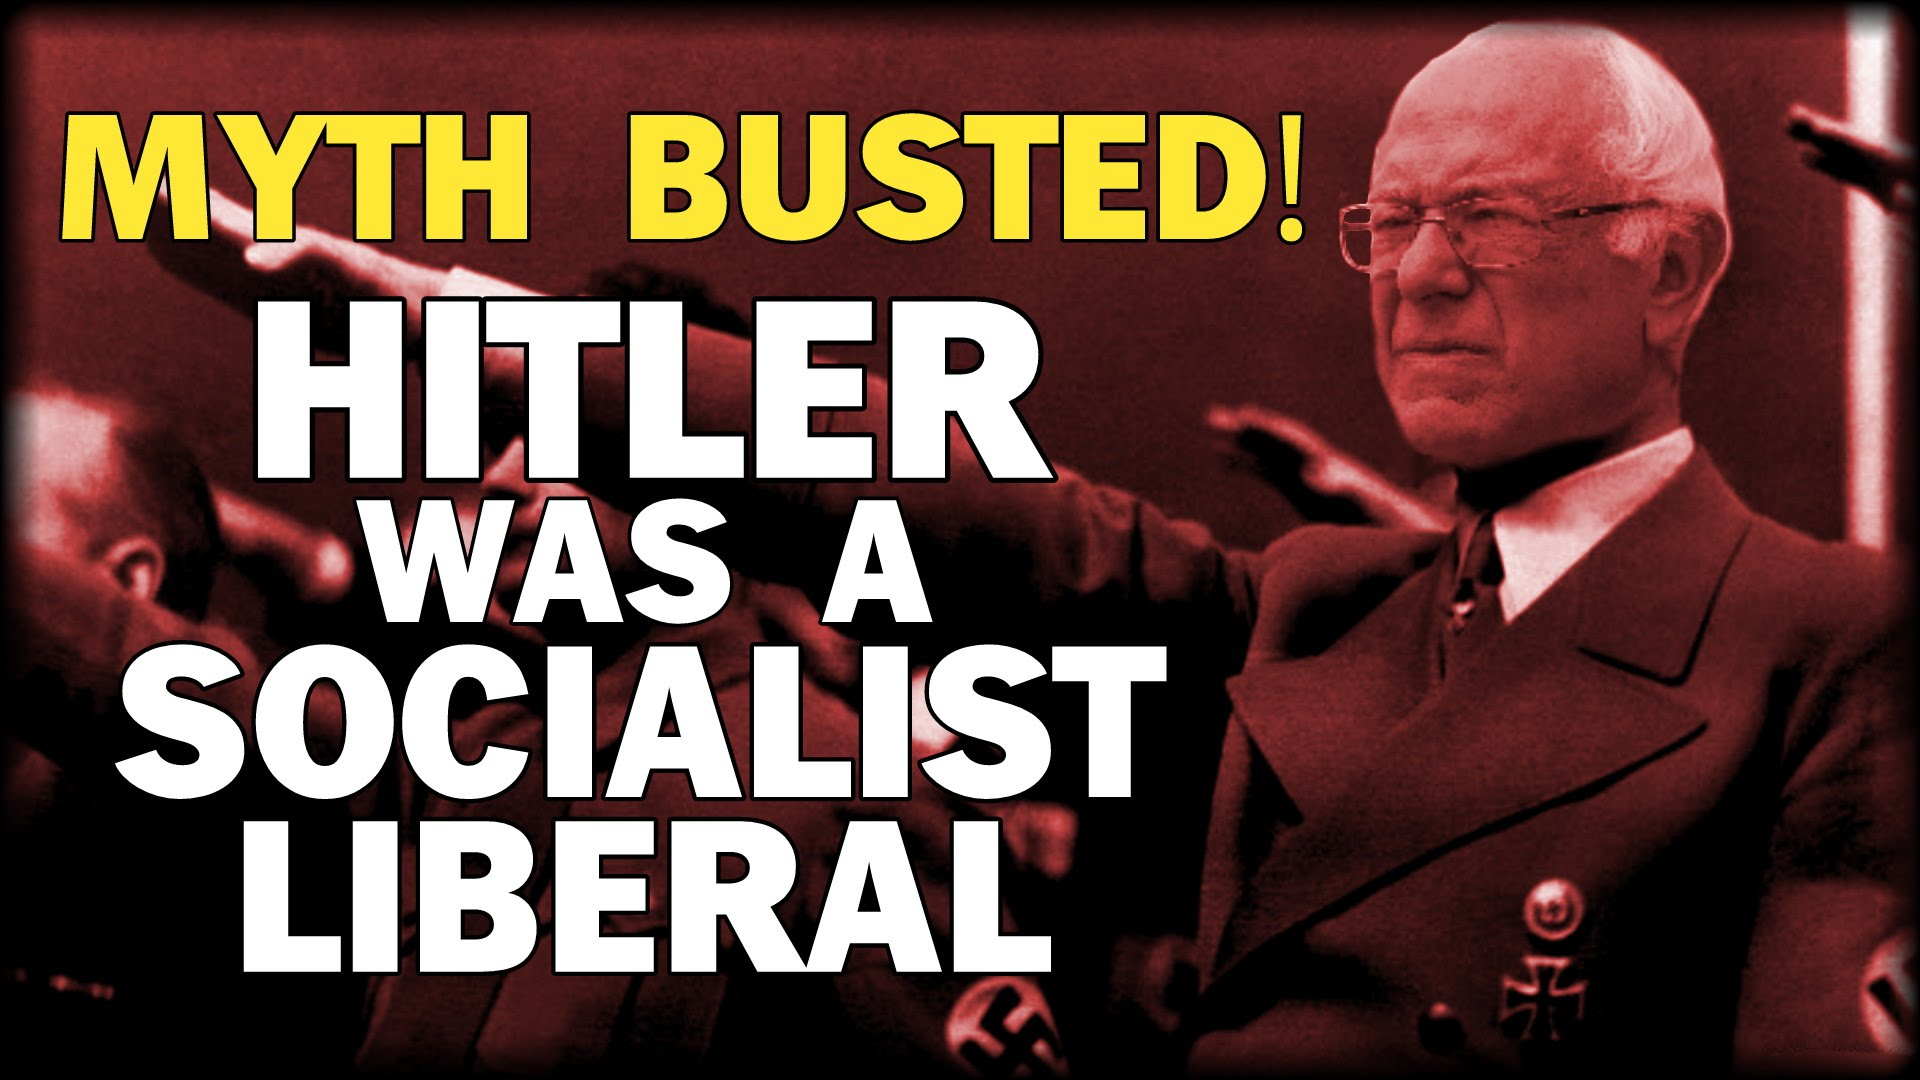 If you really think about it, Bernie Sanders is the real Hitler.